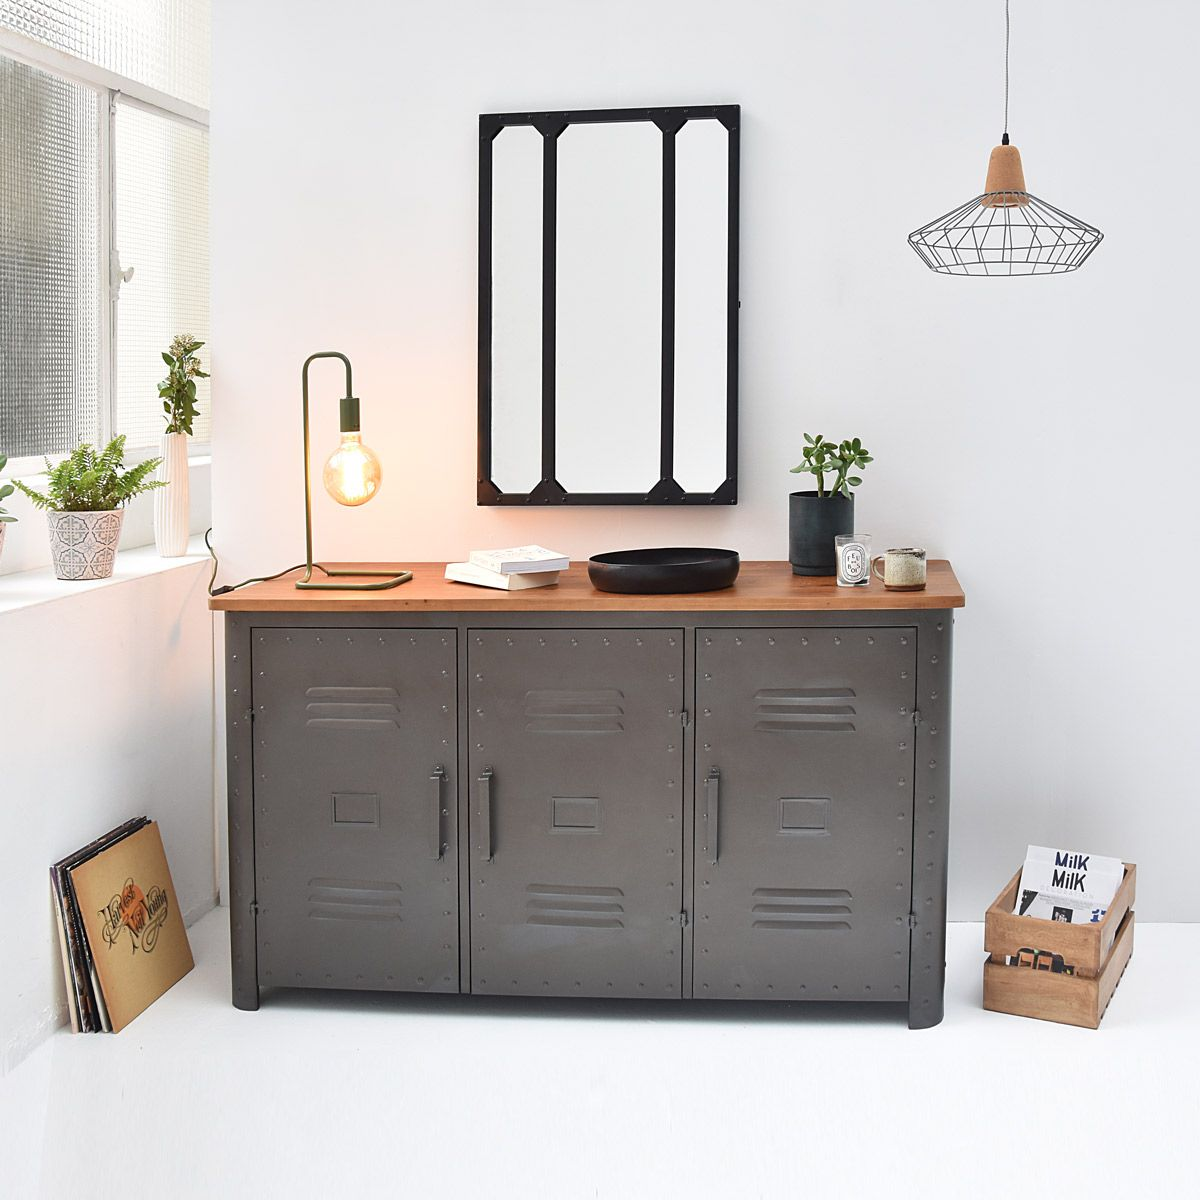 buffet 3 portes m tal gris et plateau bois style industriel 7 tag res decoclico decoclico. Black Bedroom Furniture Sets. Home Design Ideas